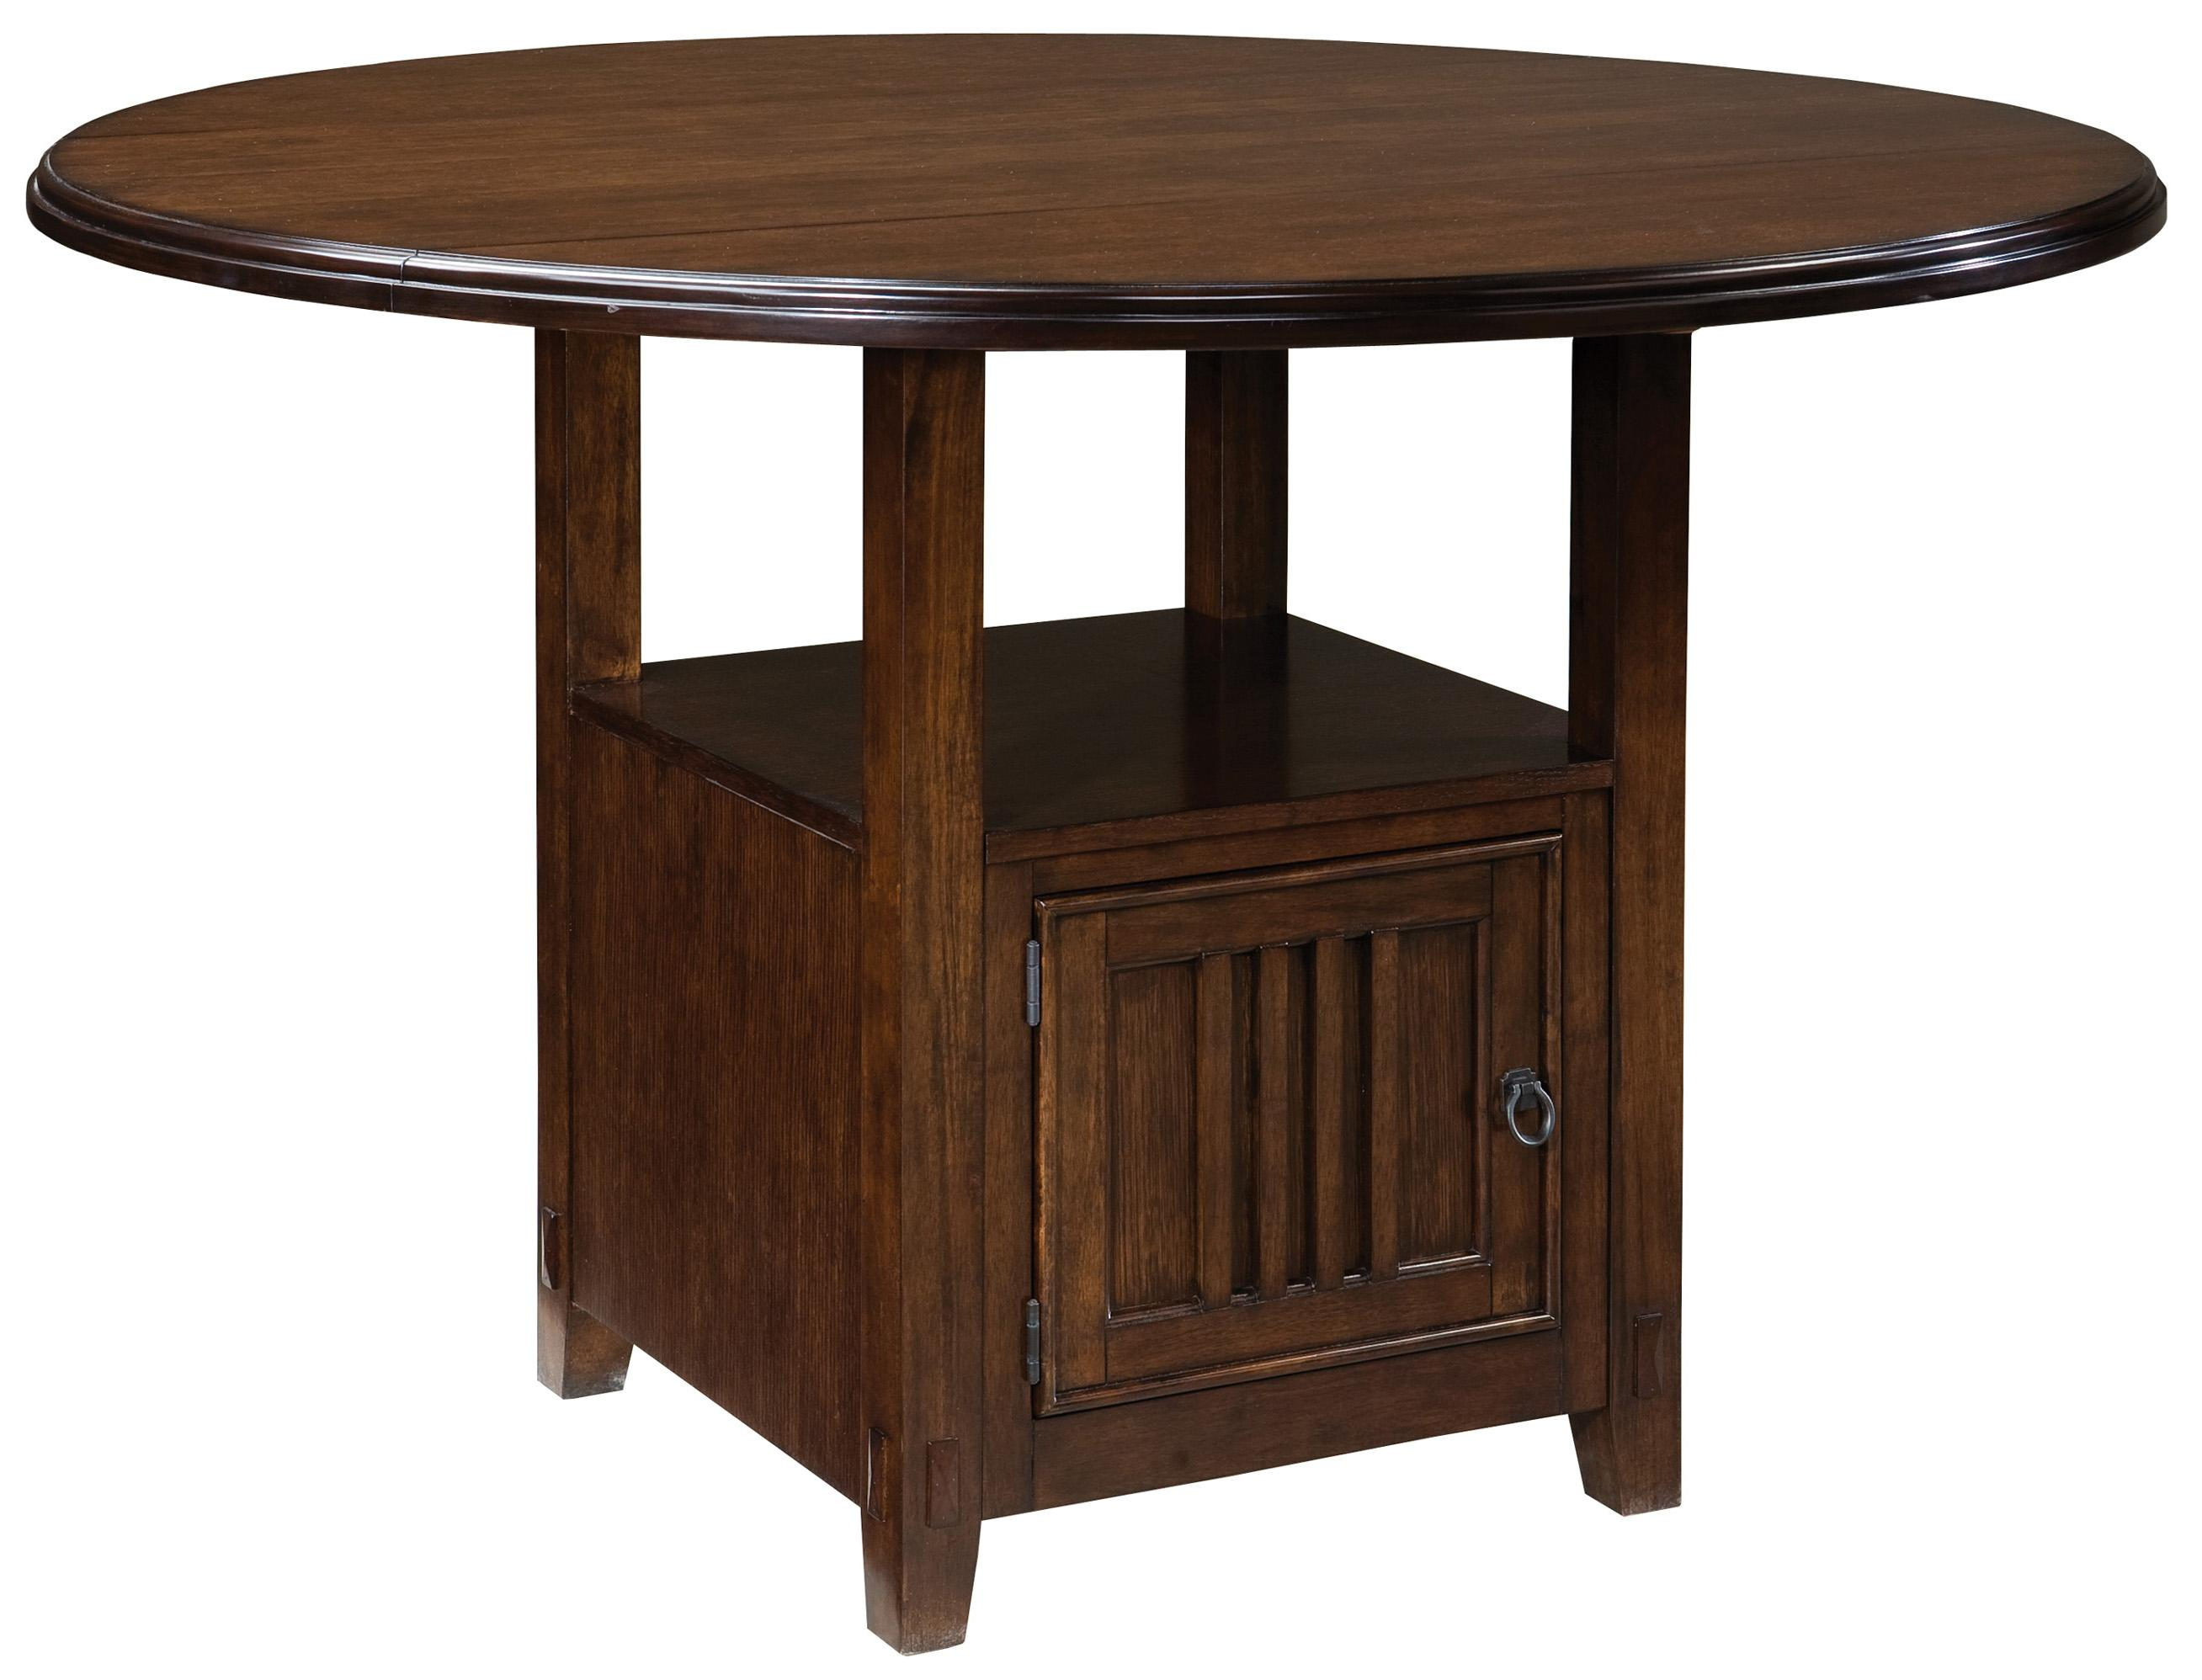 Standard Furniture Sonoma Counter Height Table - Item Number: 11906